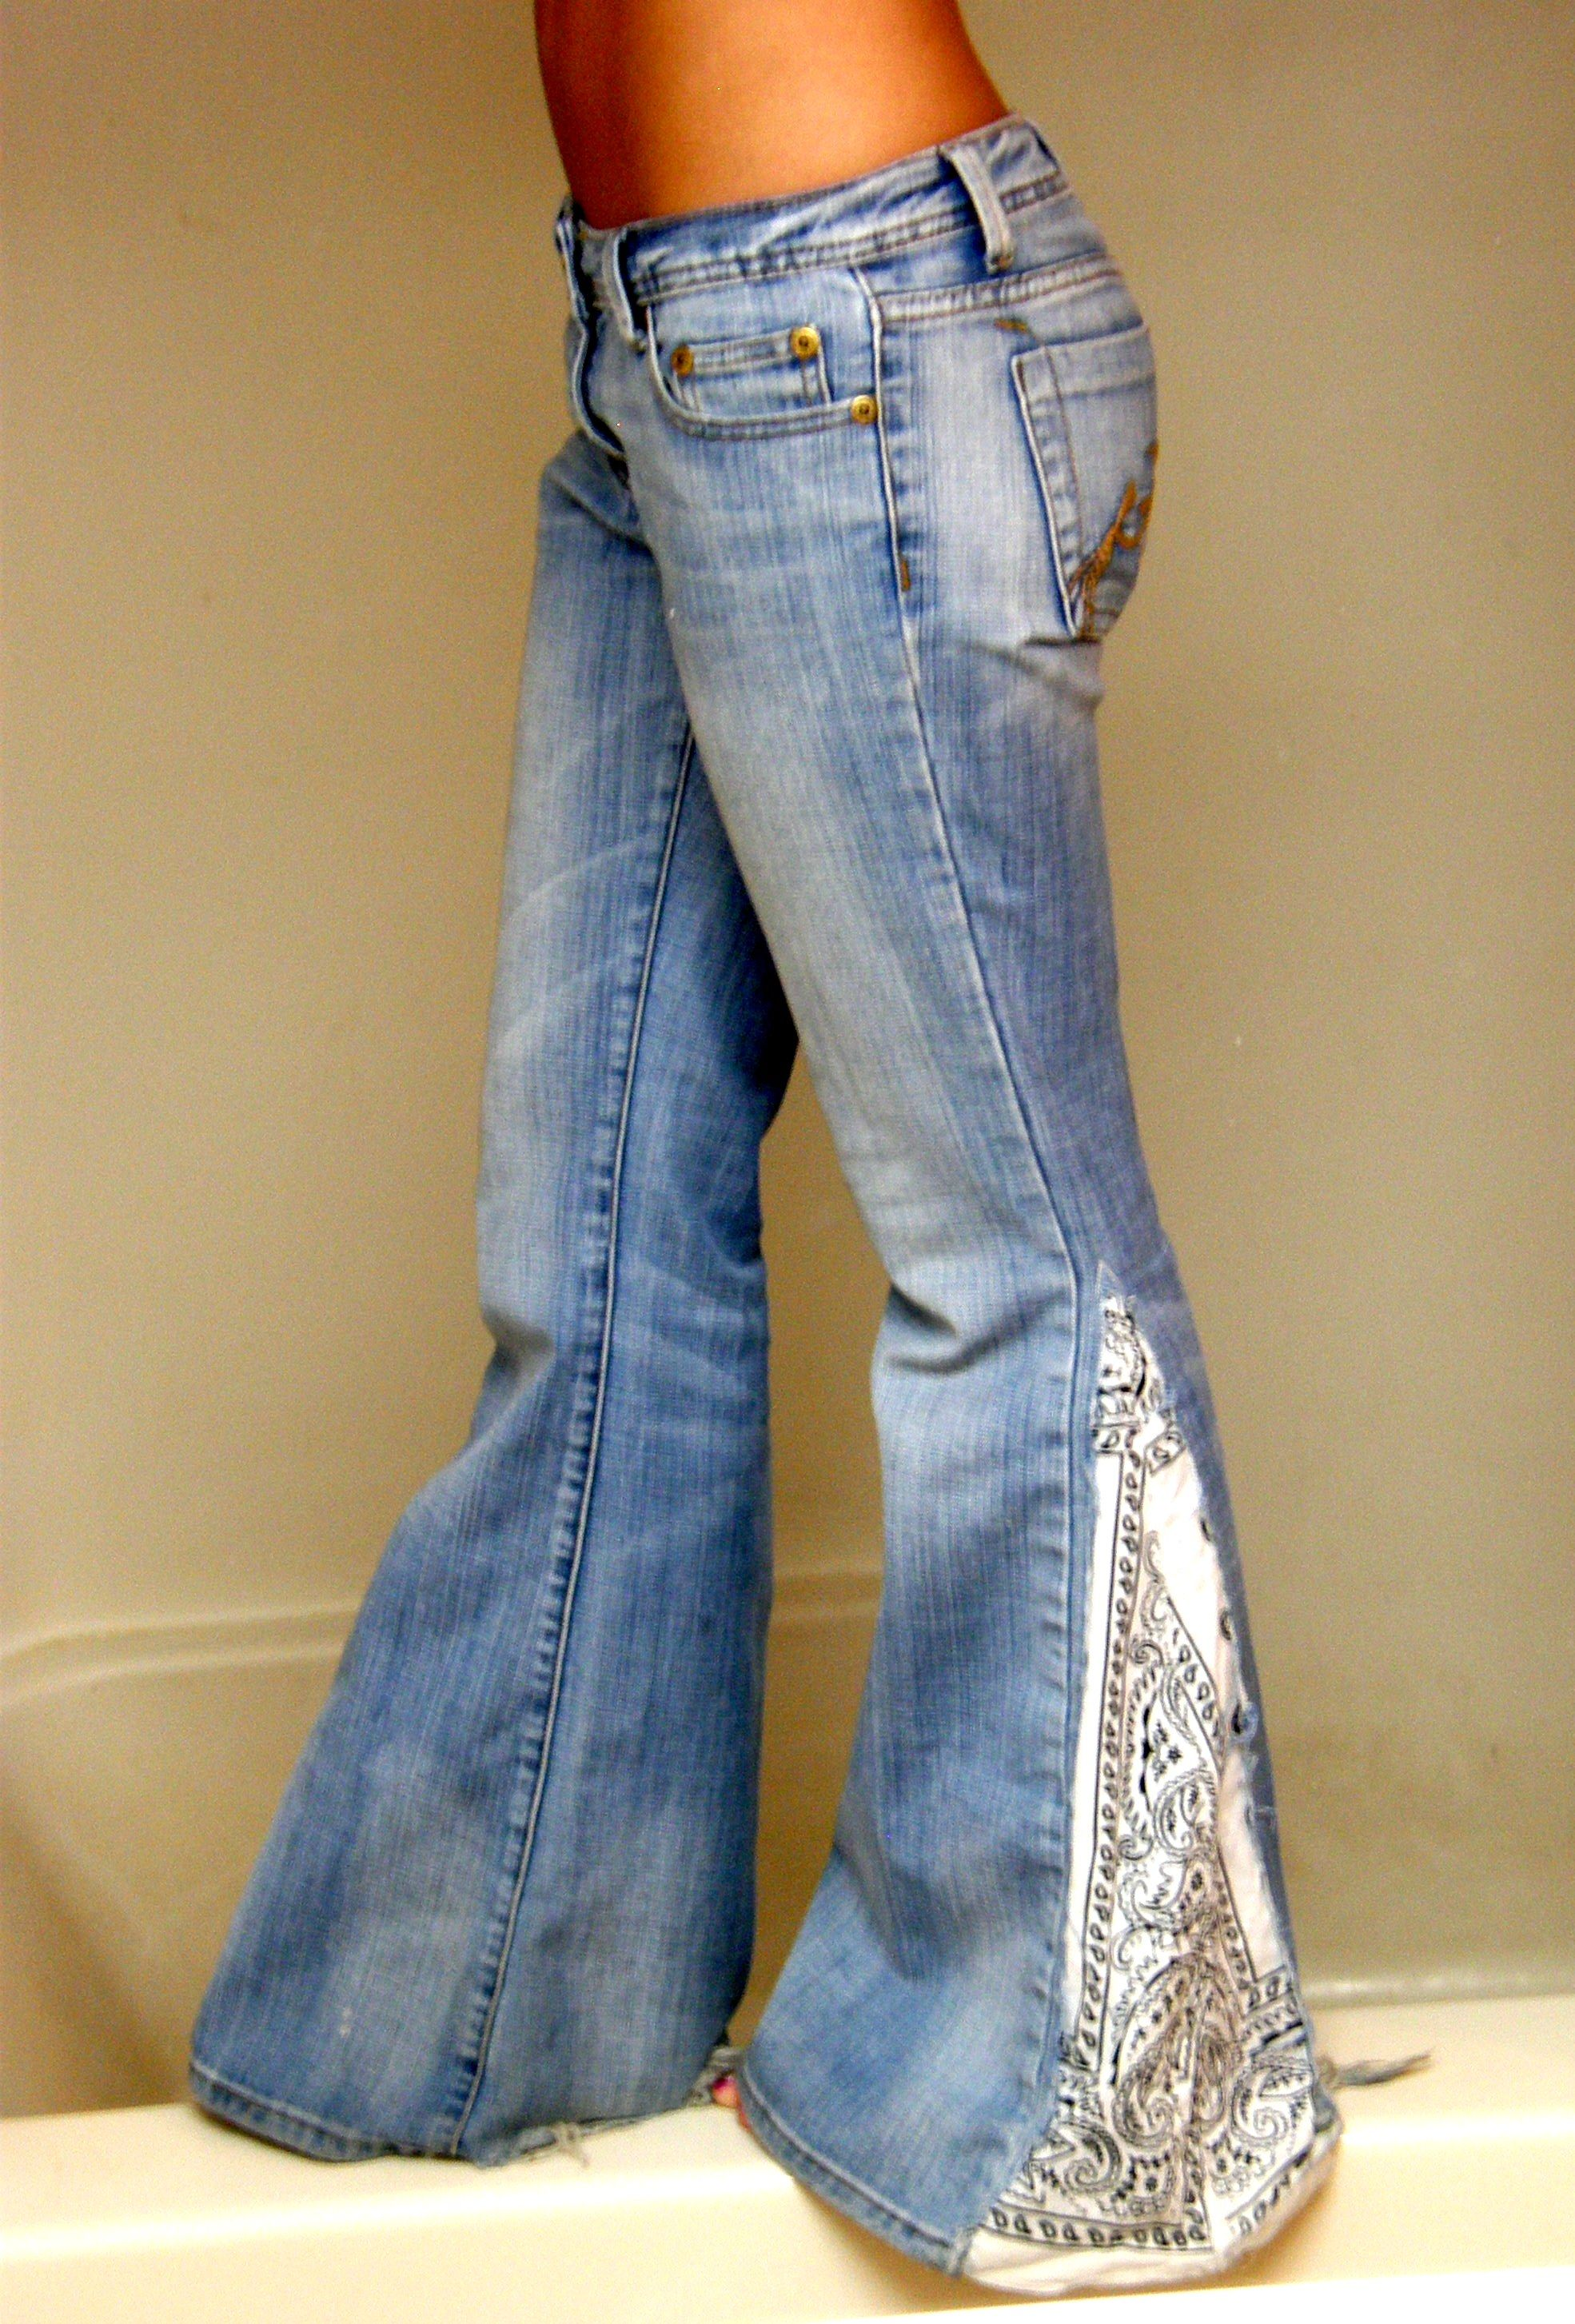 Bandana jeans, oh those where the day. Every pair of jeans I had I ...